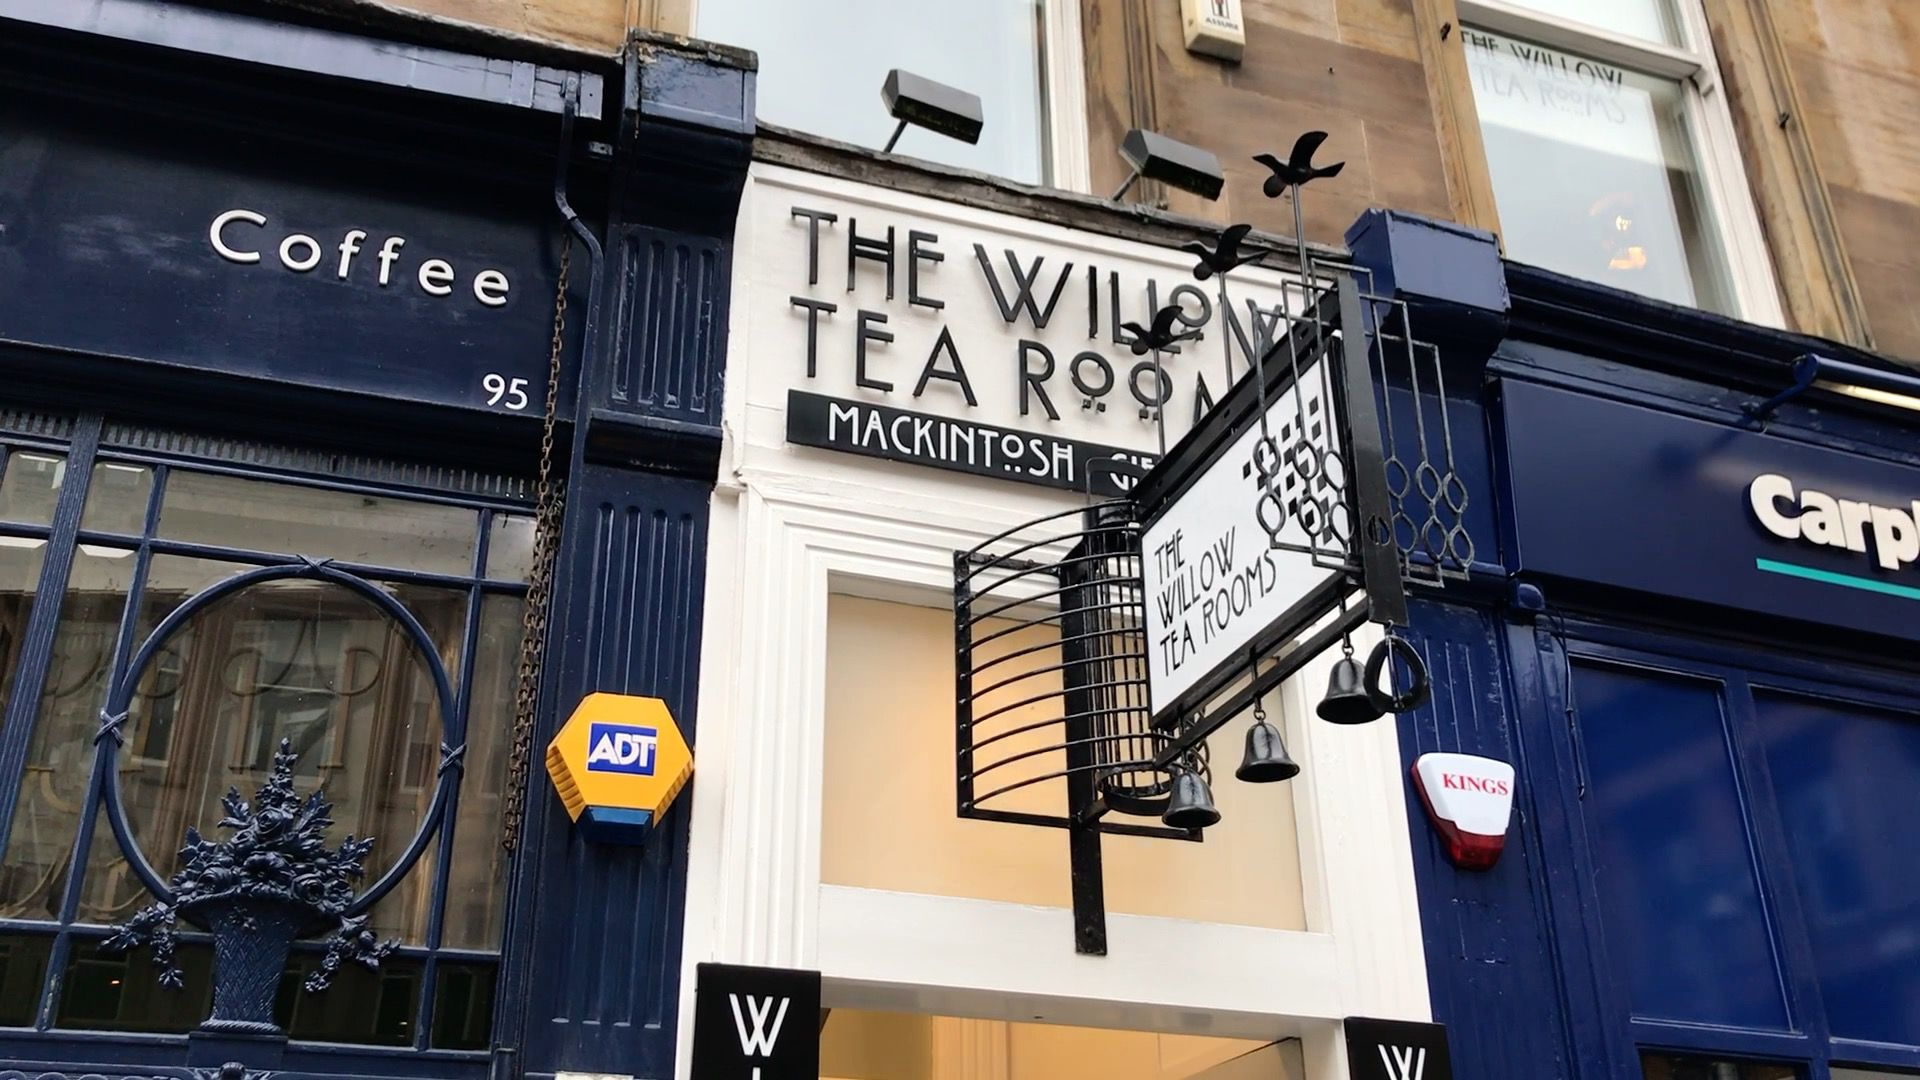 Glasgow - Willow tearooms